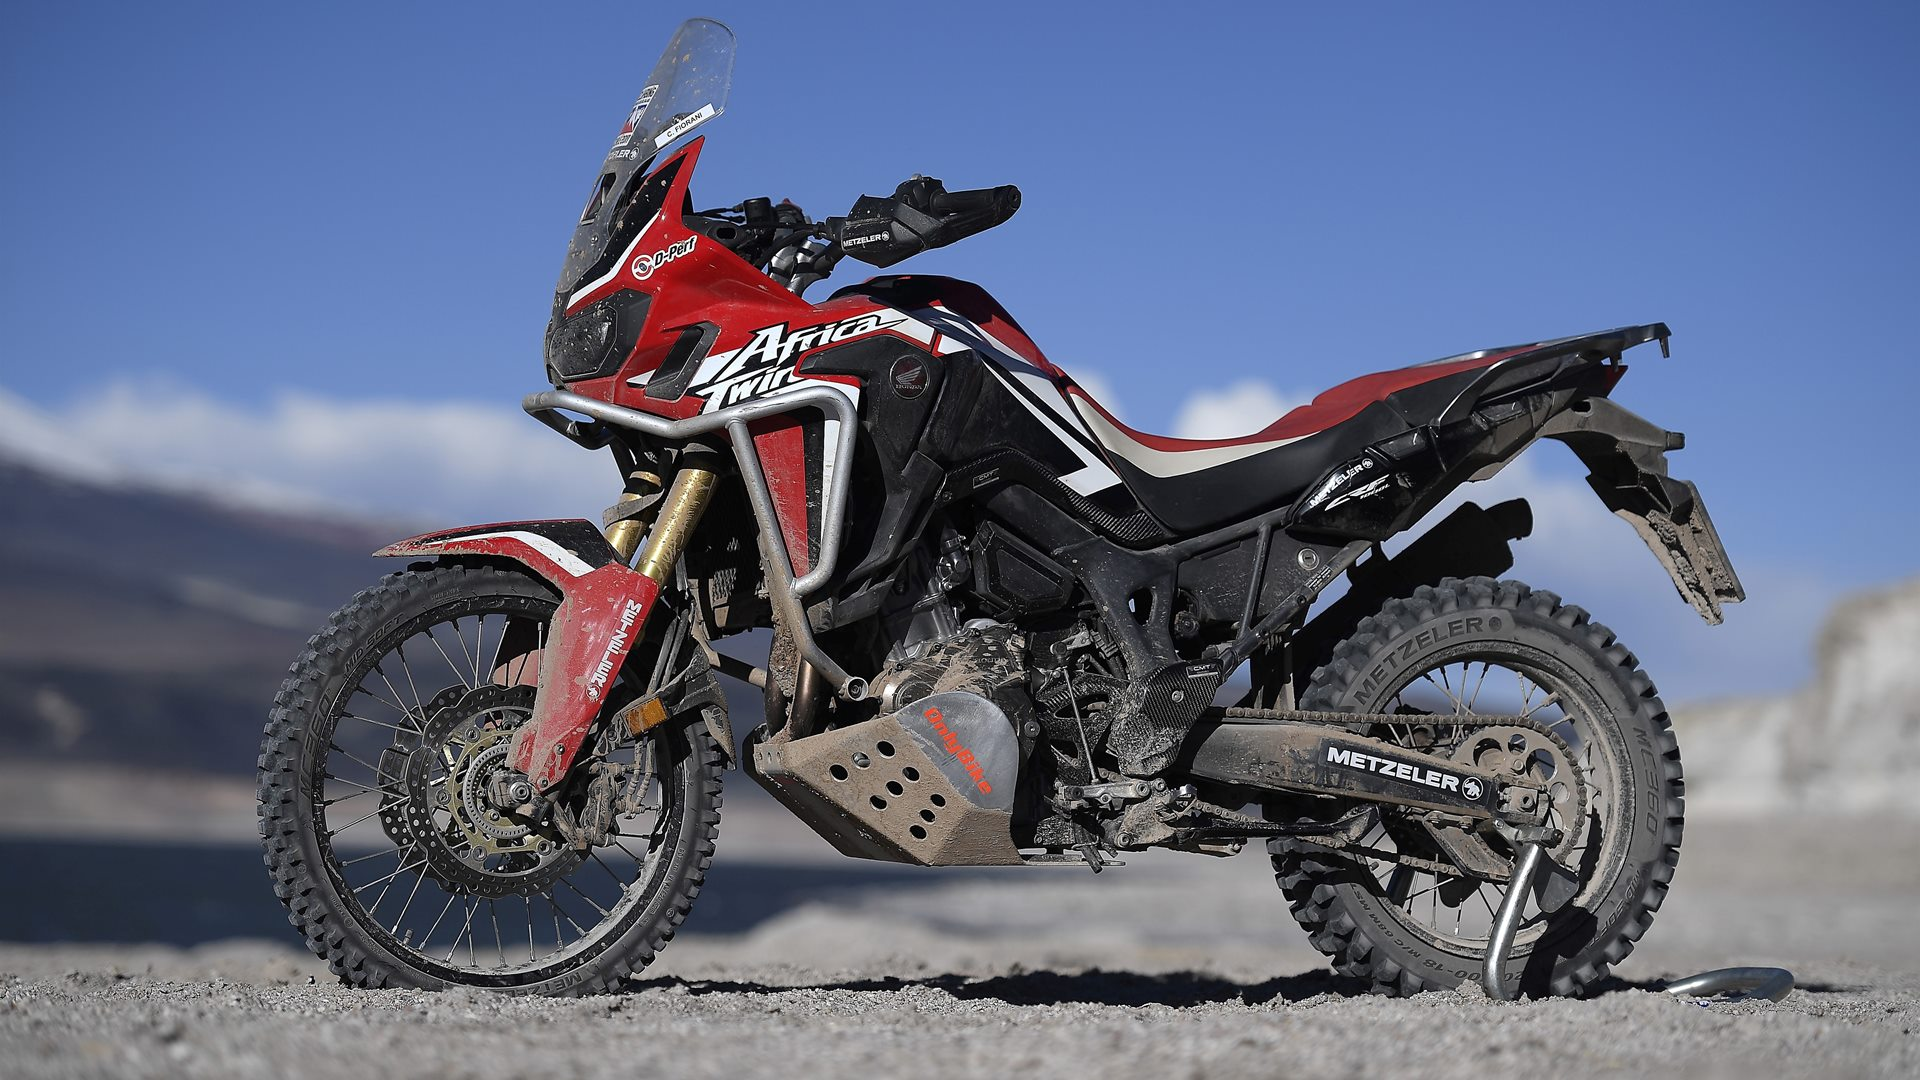 Honda CRF1000L Africa Twin DCT India